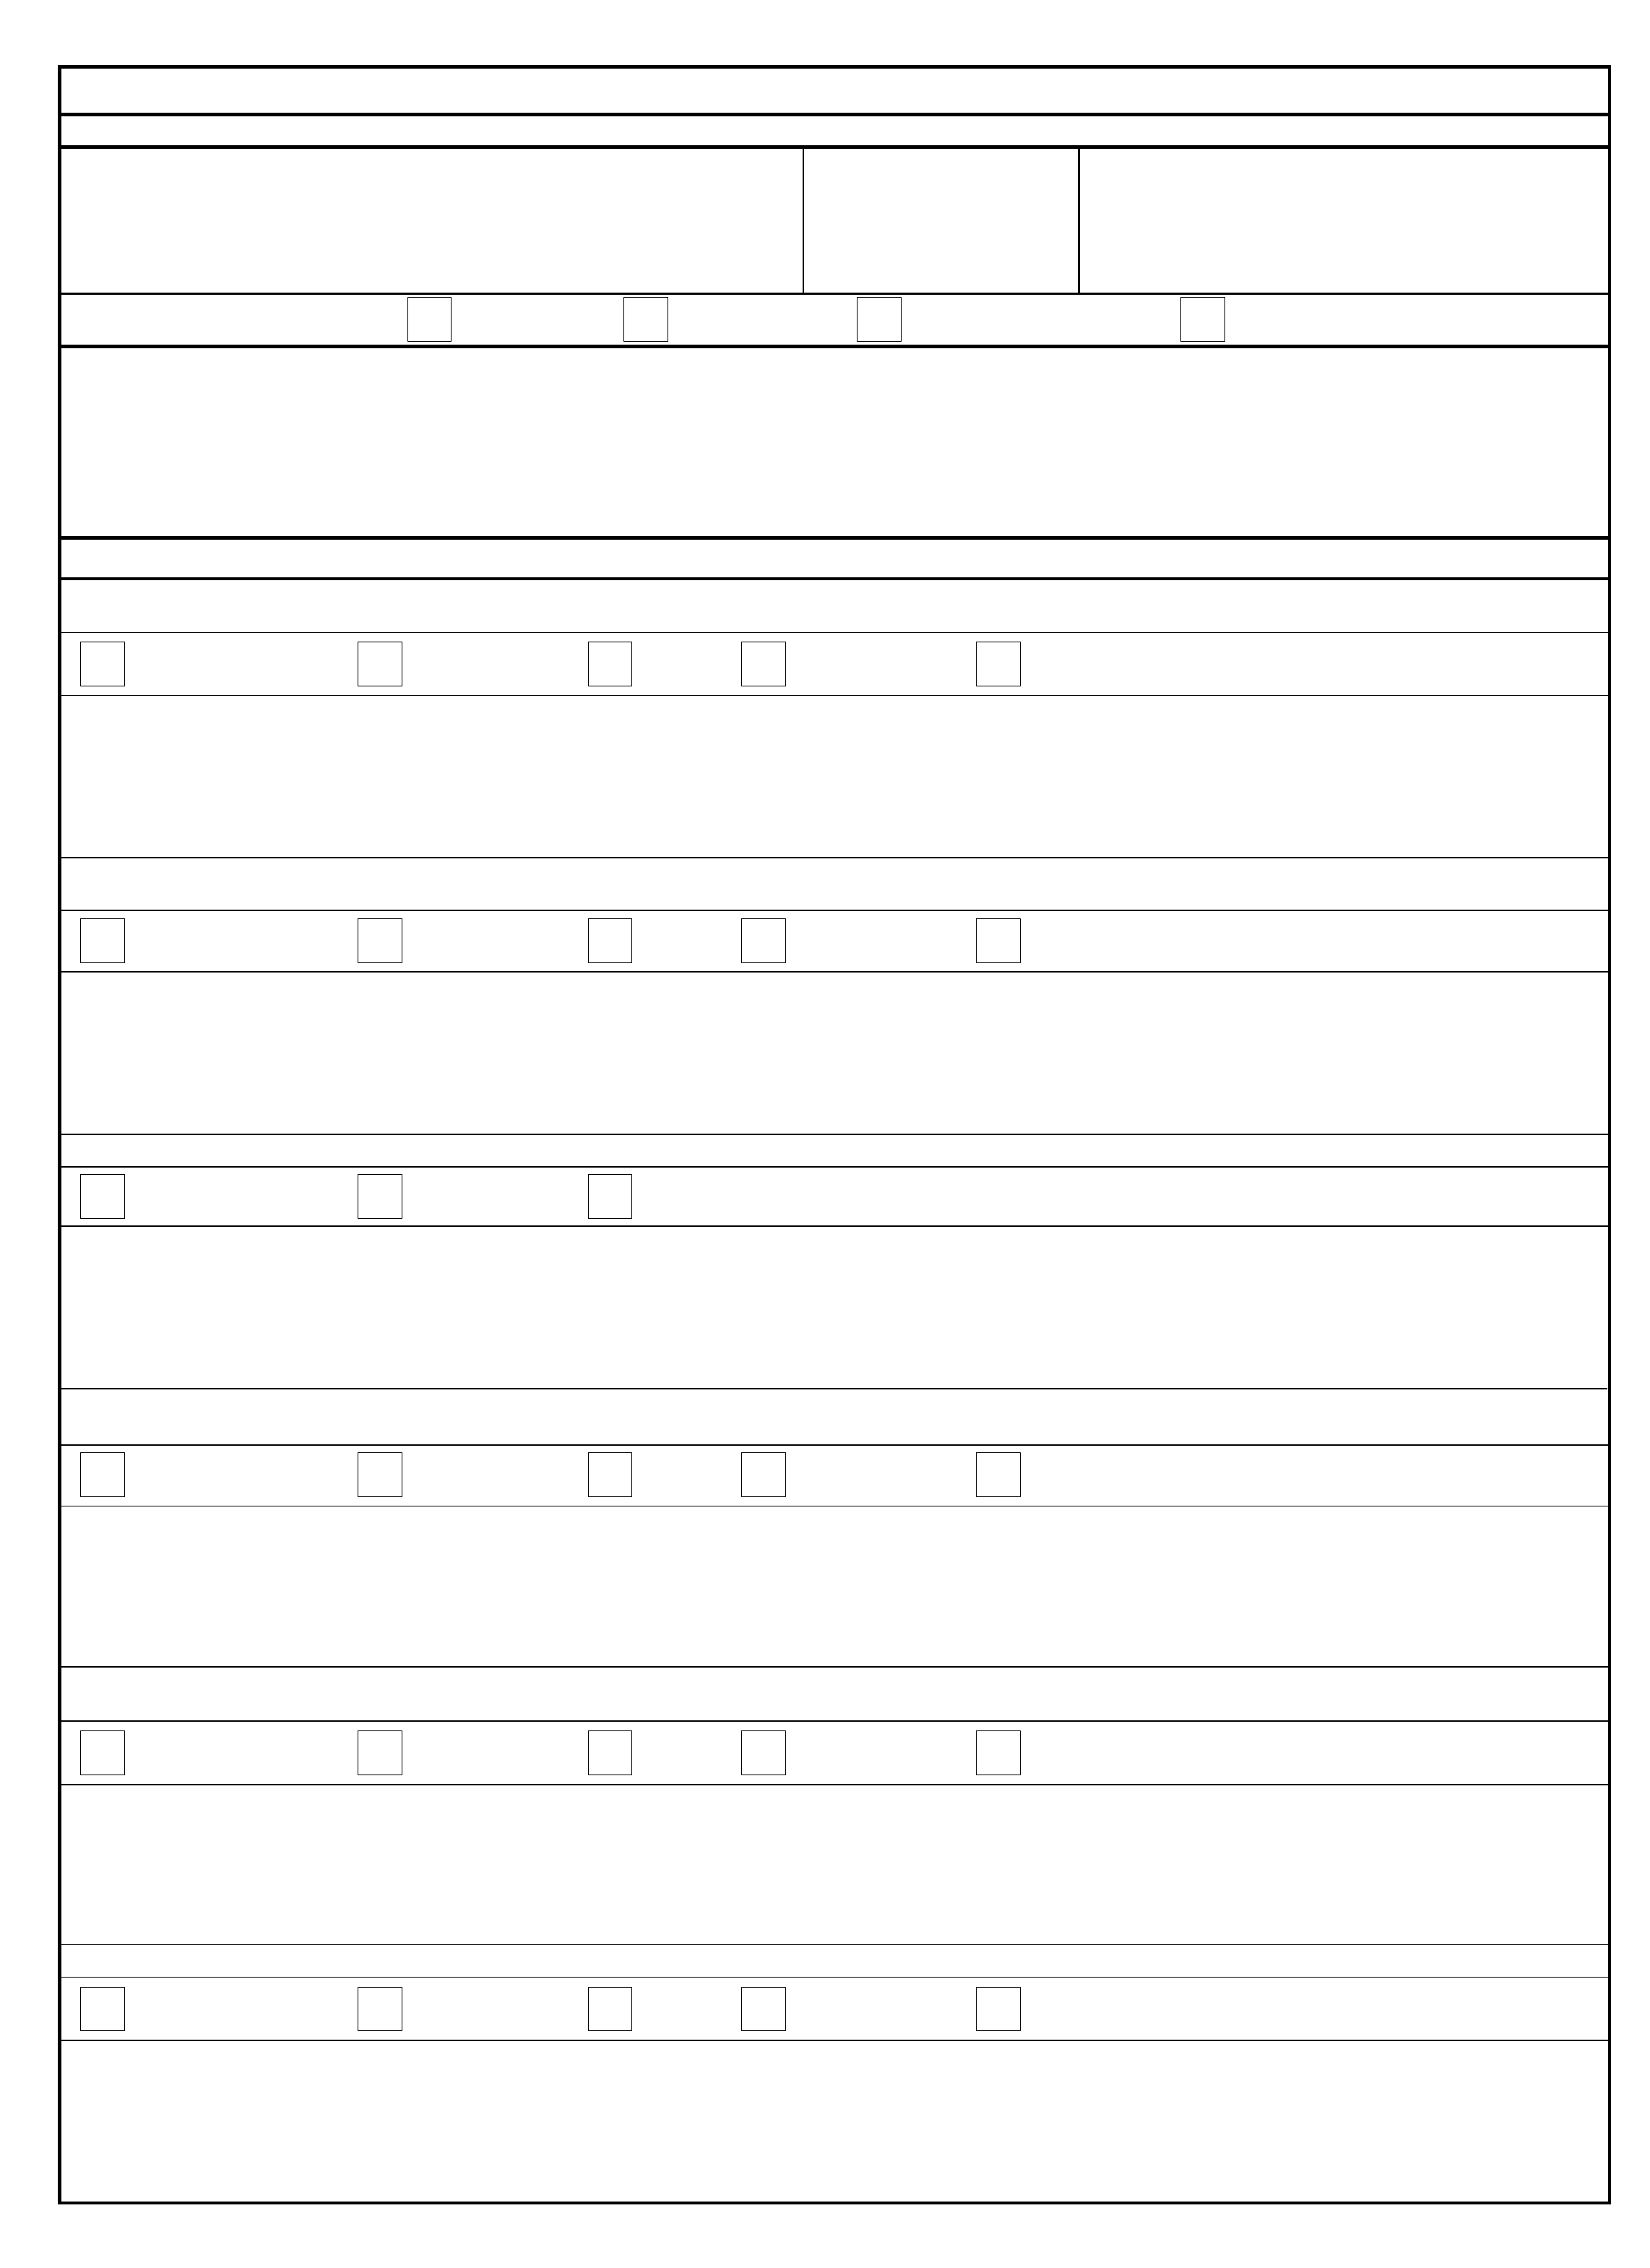 Performance Feedback Worksheet Free Download